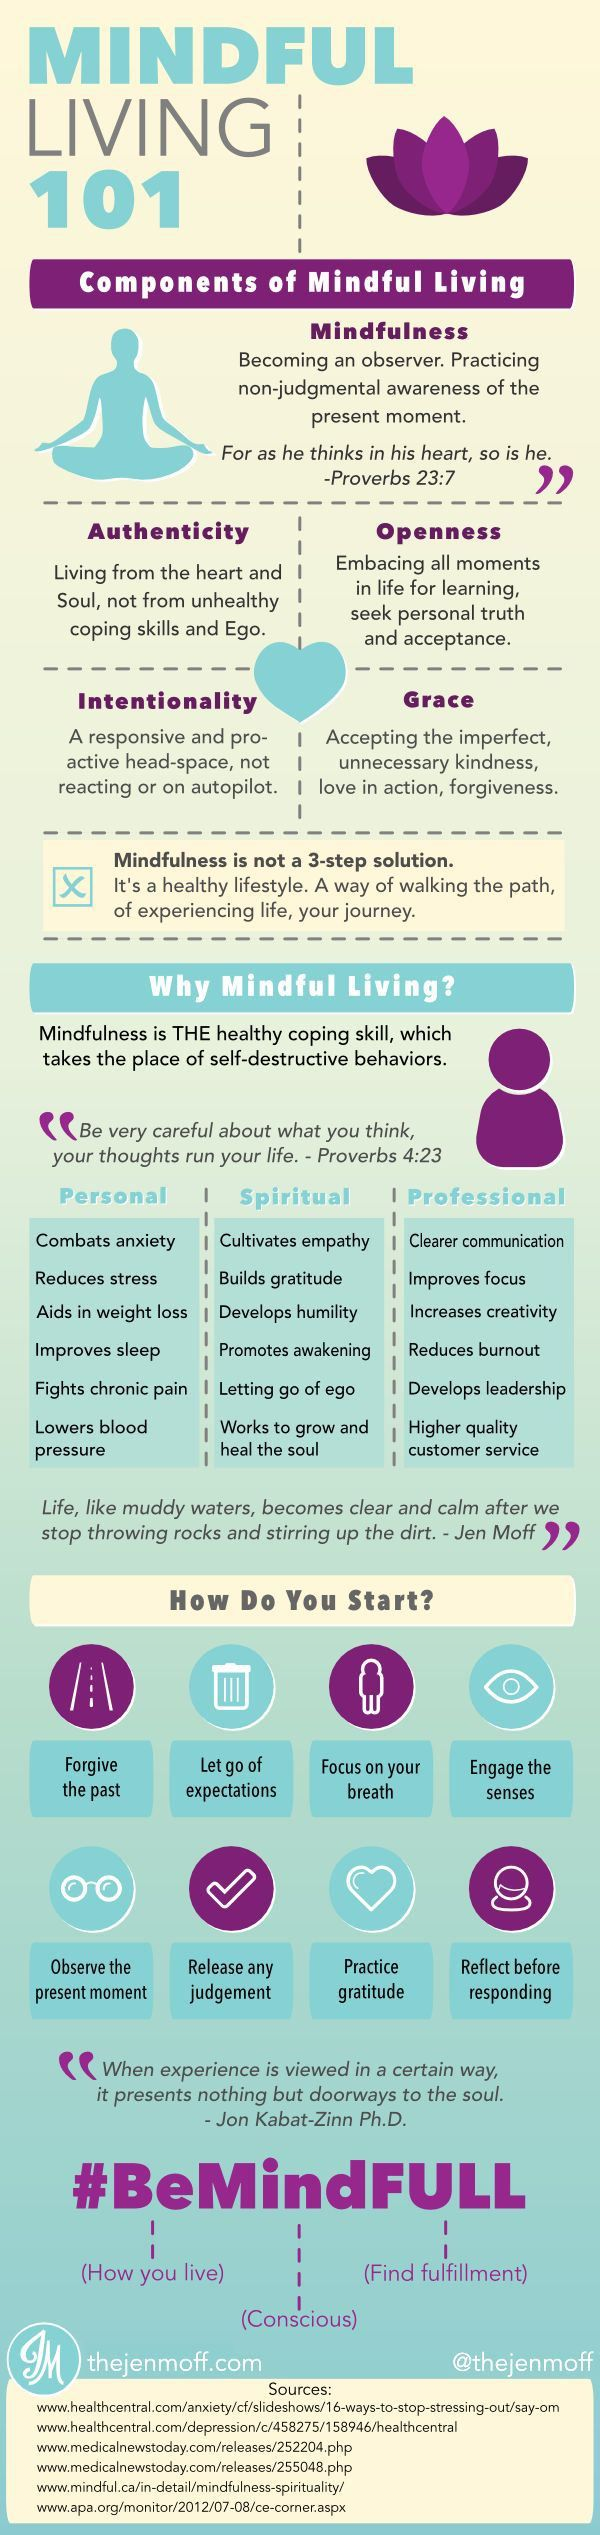 Mindful-Living-101